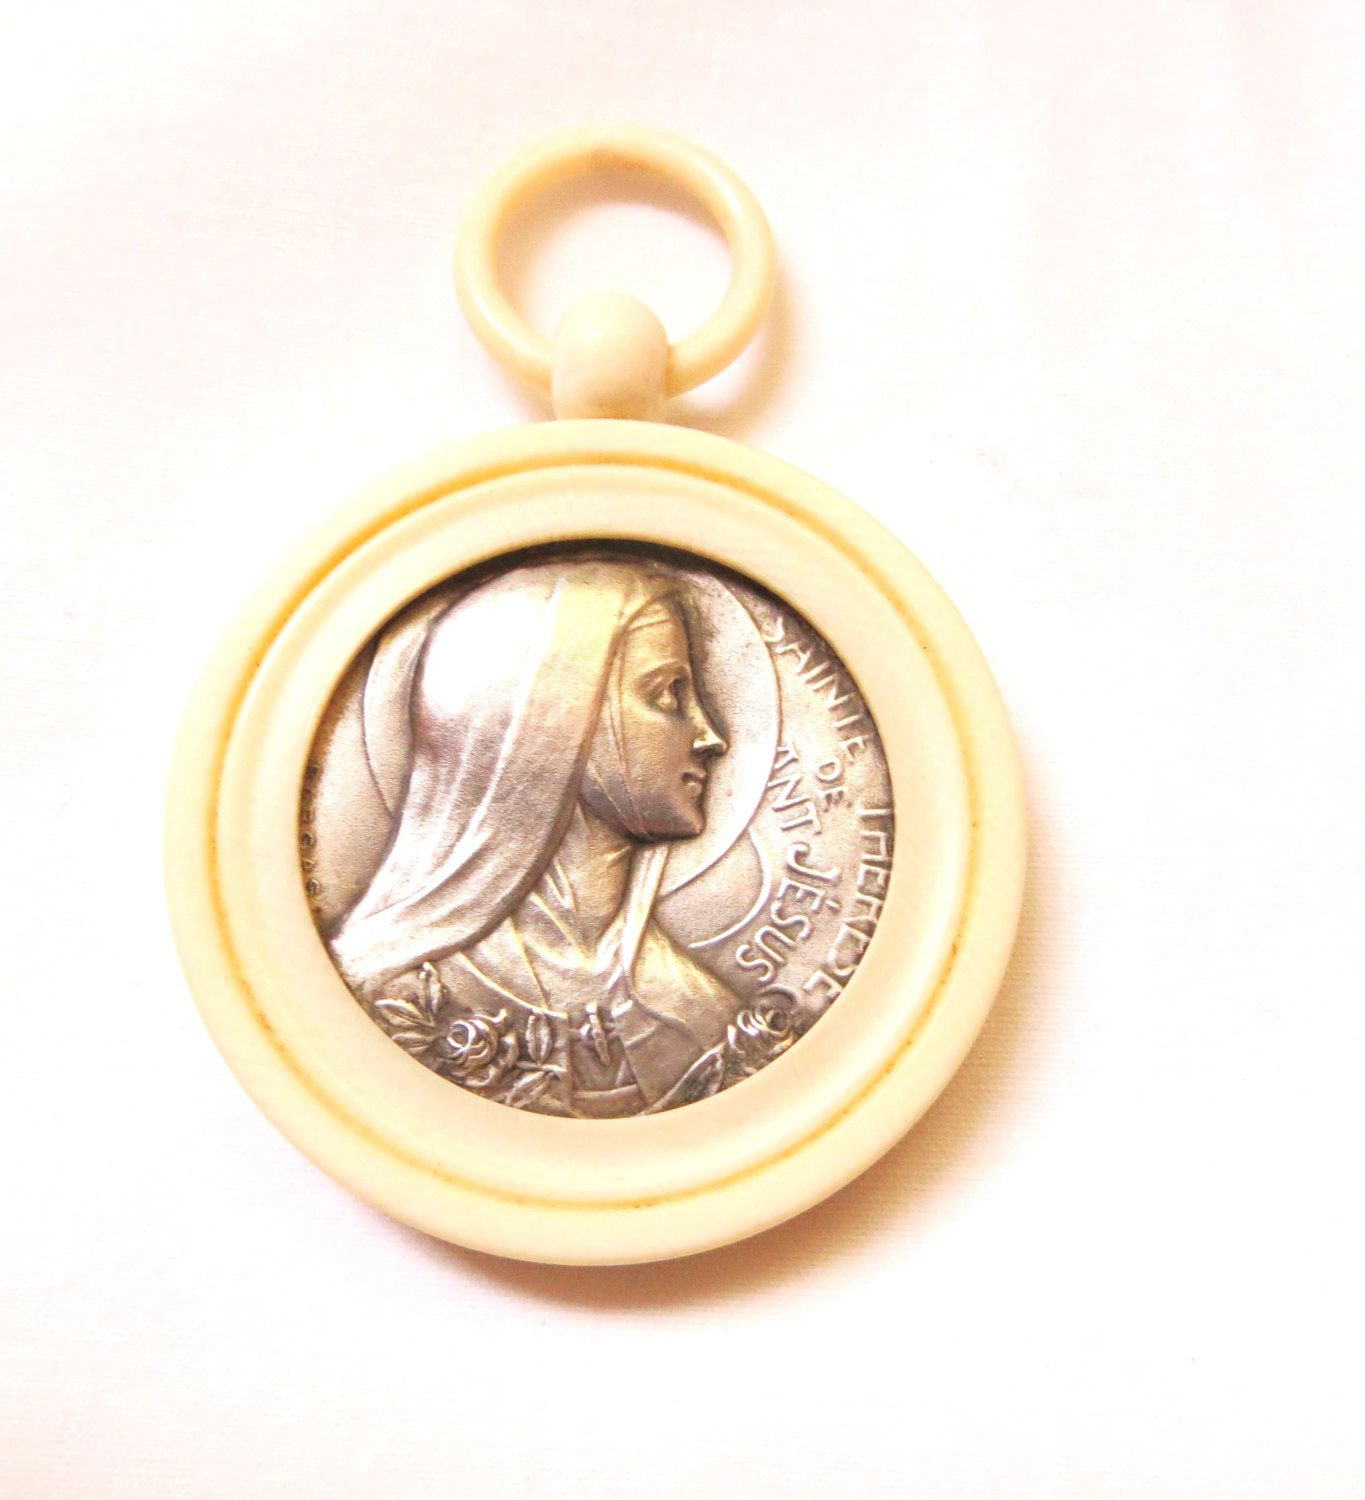 1920s French Saint Therese / Theresa lucite medallion pendant portrait silver  carmelite nun by 2shoppingdiva on Etsy